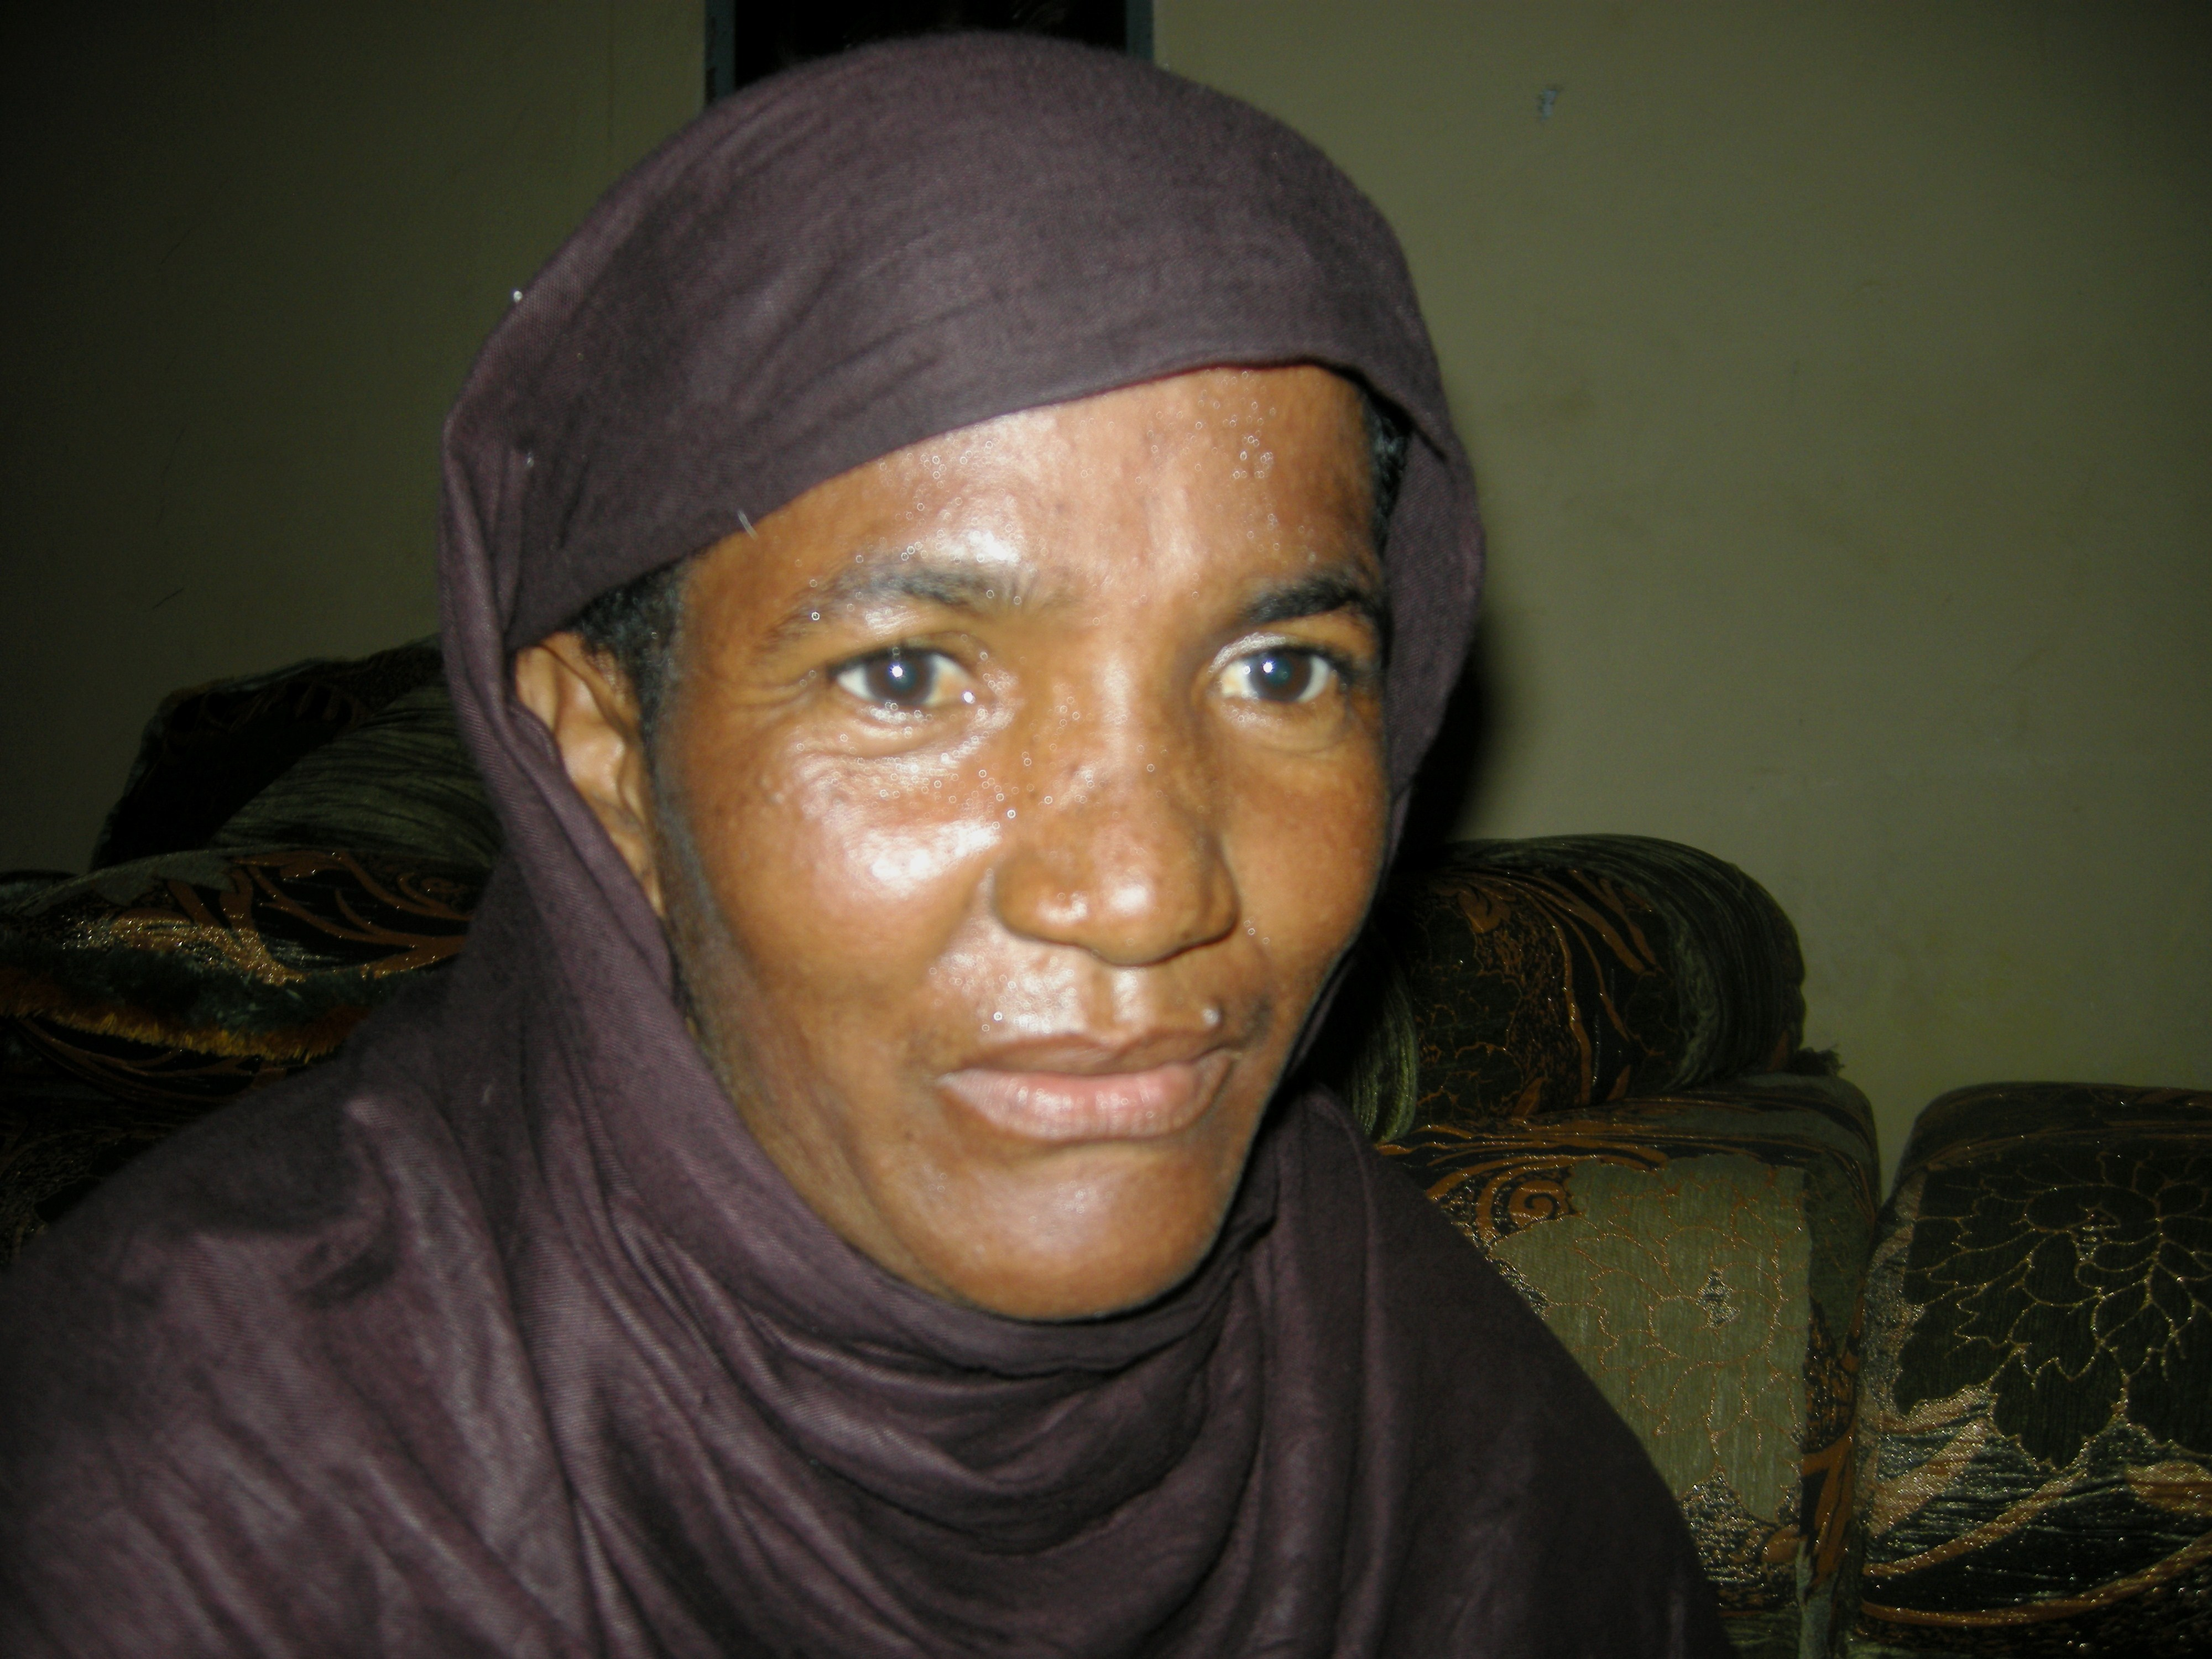 Former slave in Mauritania. December 2010